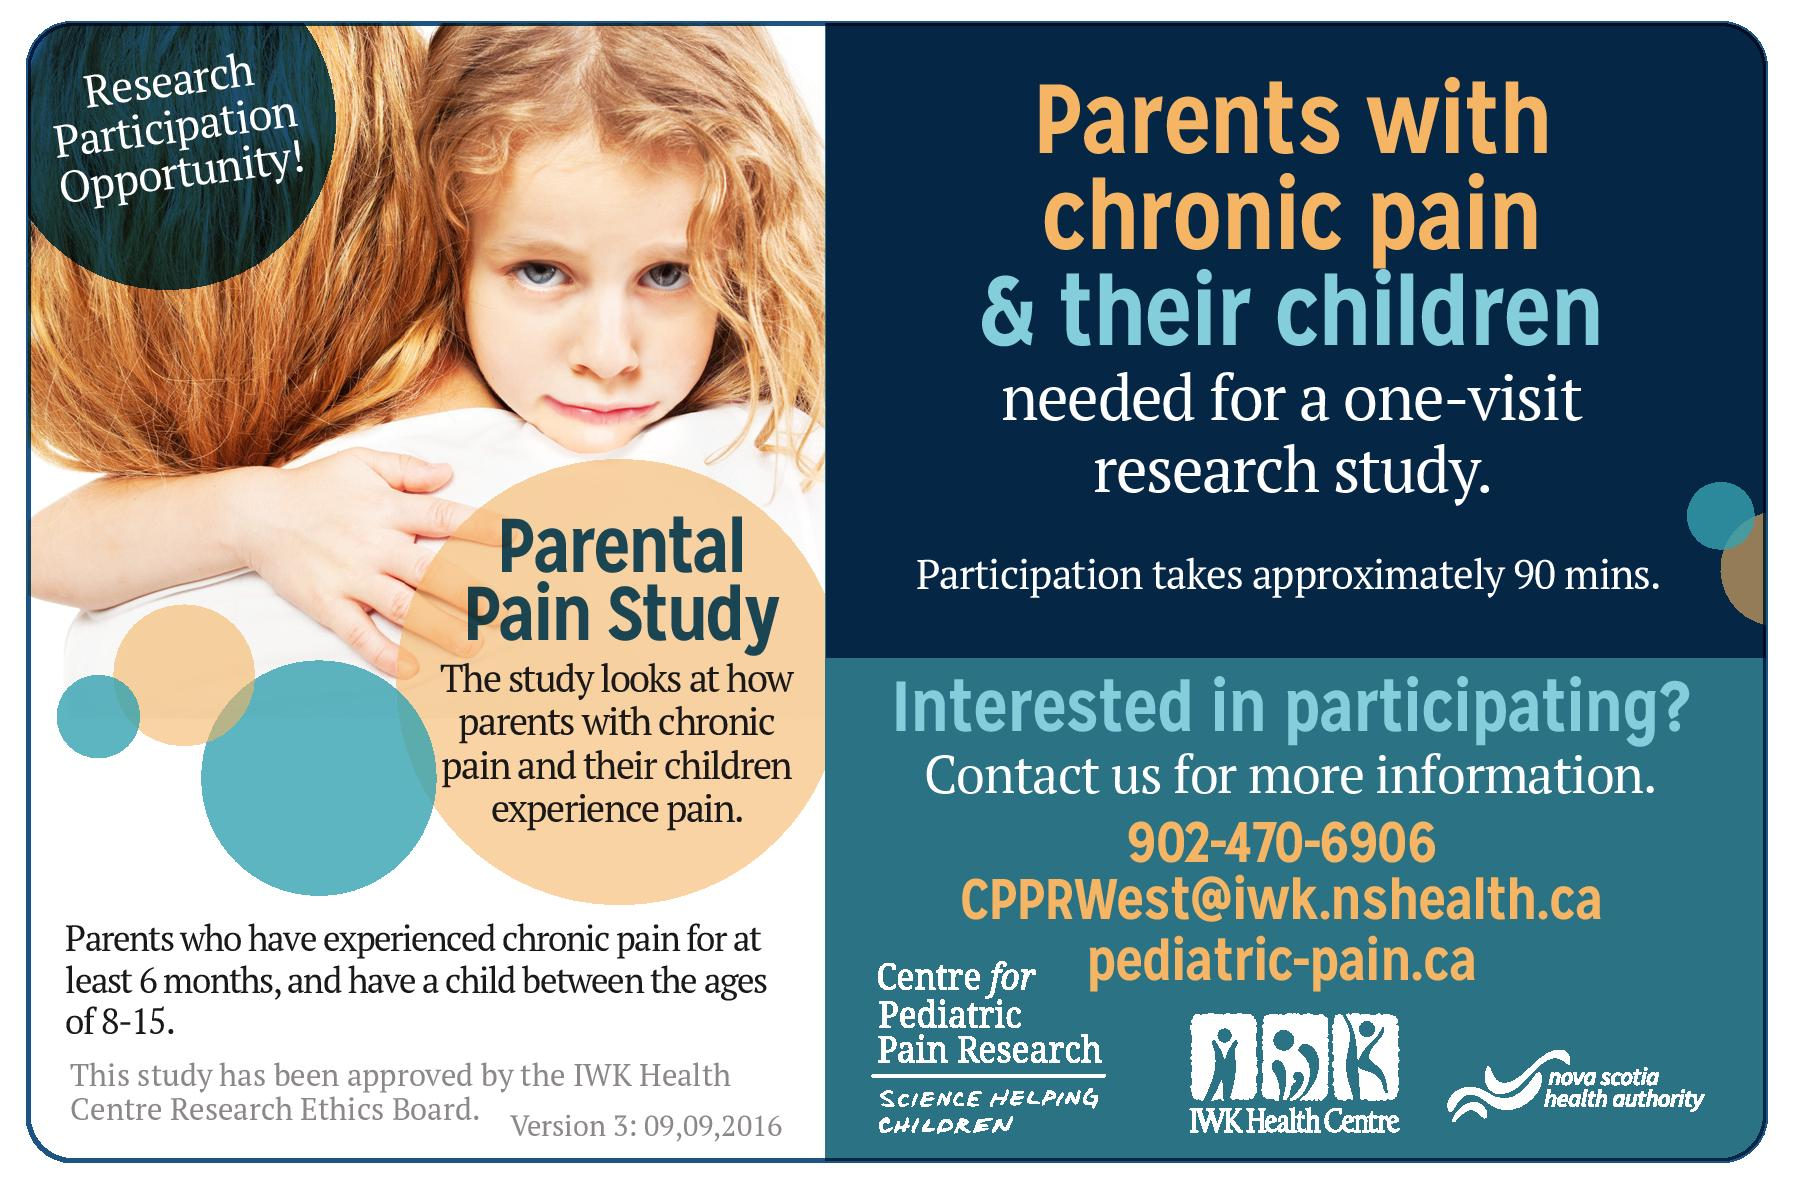 Parents with chronic pain